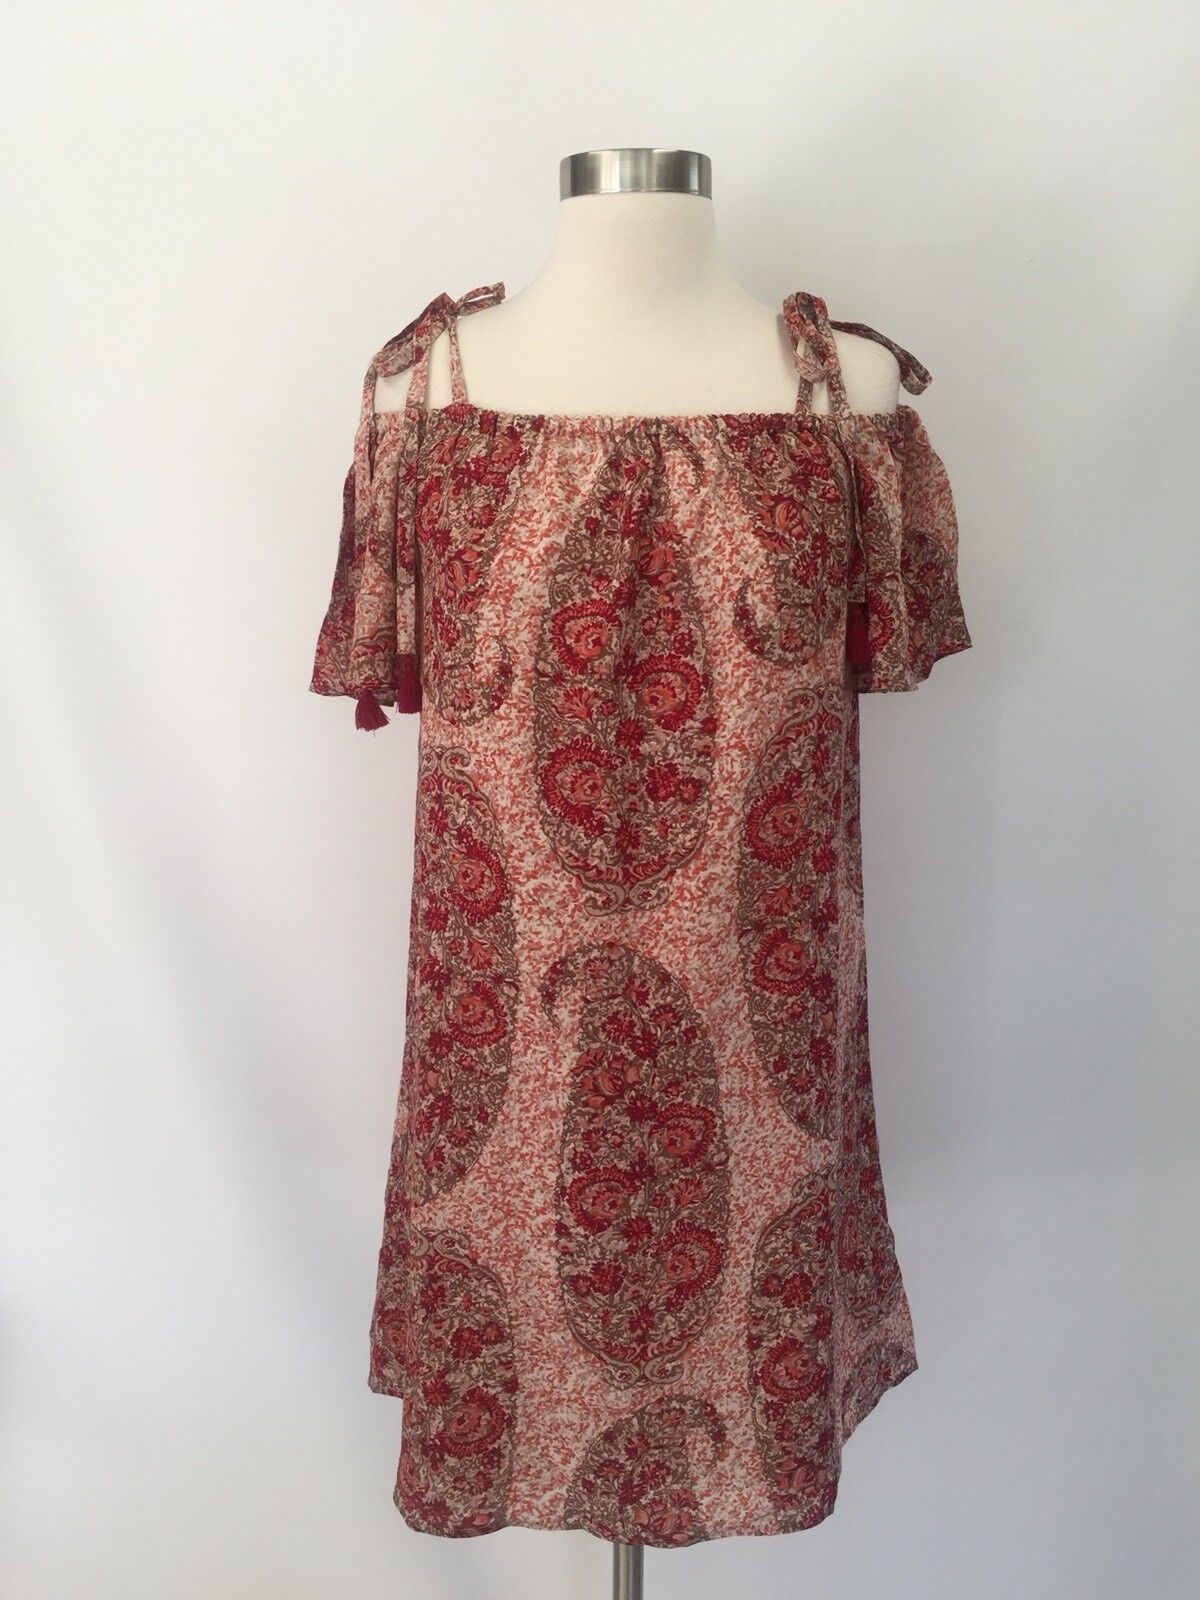 Madewell silk cold-shoulder dress watercolor paisley,g6420 Pink Floral Sz S